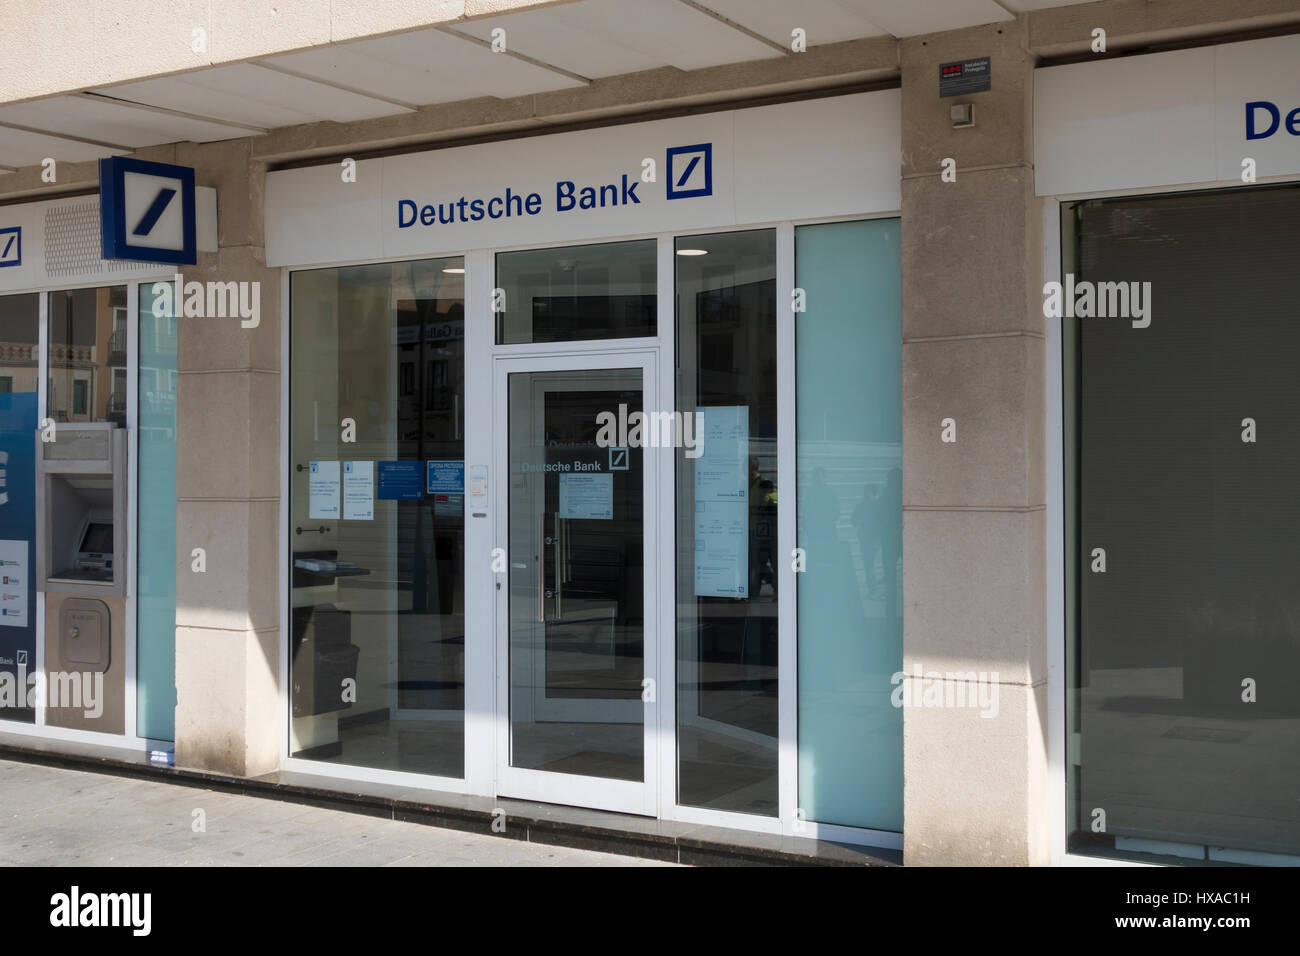 Deutsche Bank branch office outdoor, with blue text and logo in a billboard, in the city of Cambrils at Spain - Stock Image